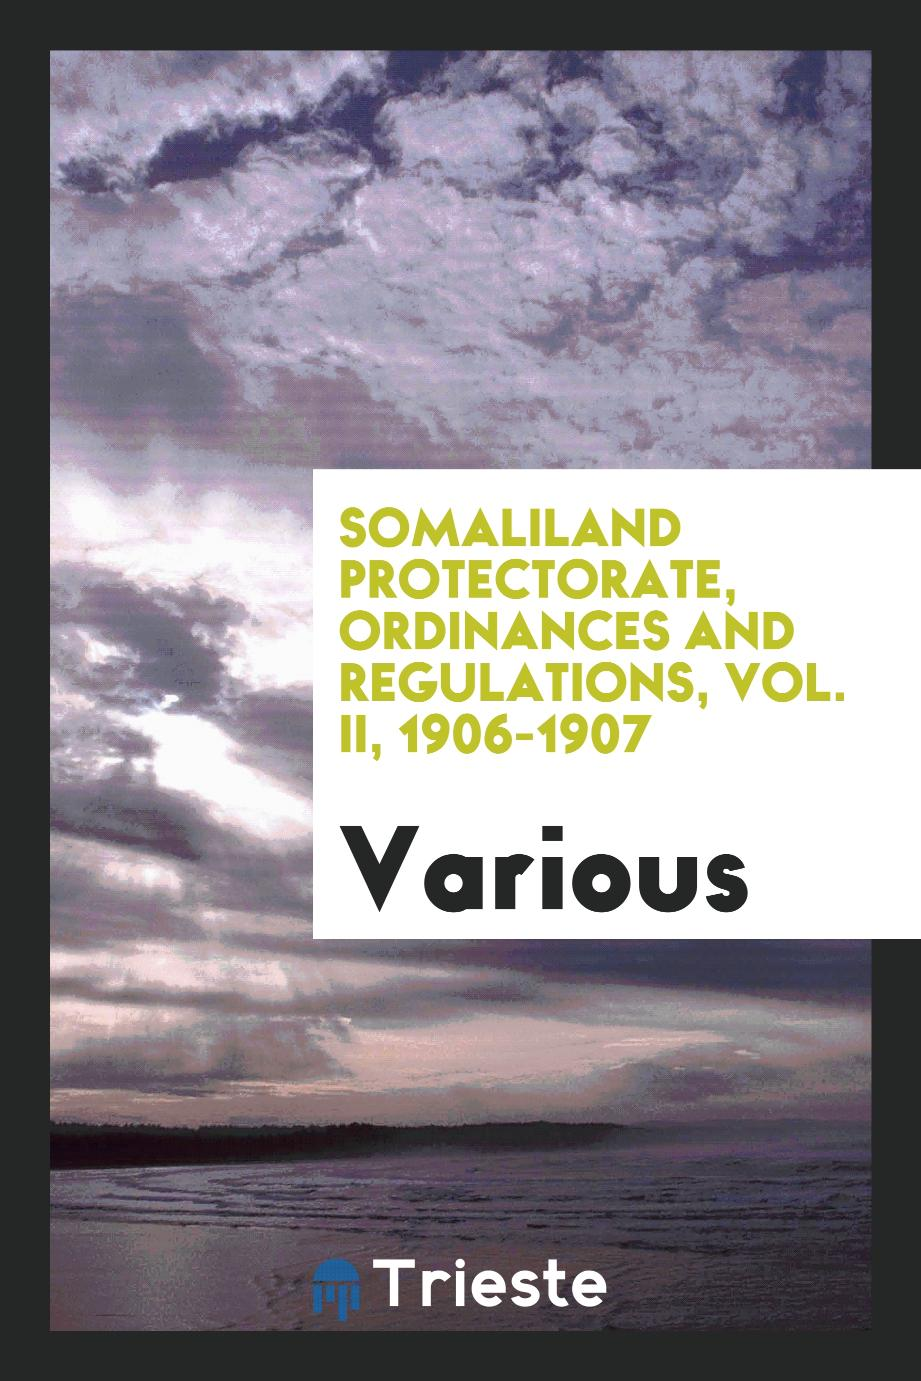 Somaliland Protectorate, Ordinances and Regulations, Vol. II, 1906-1907